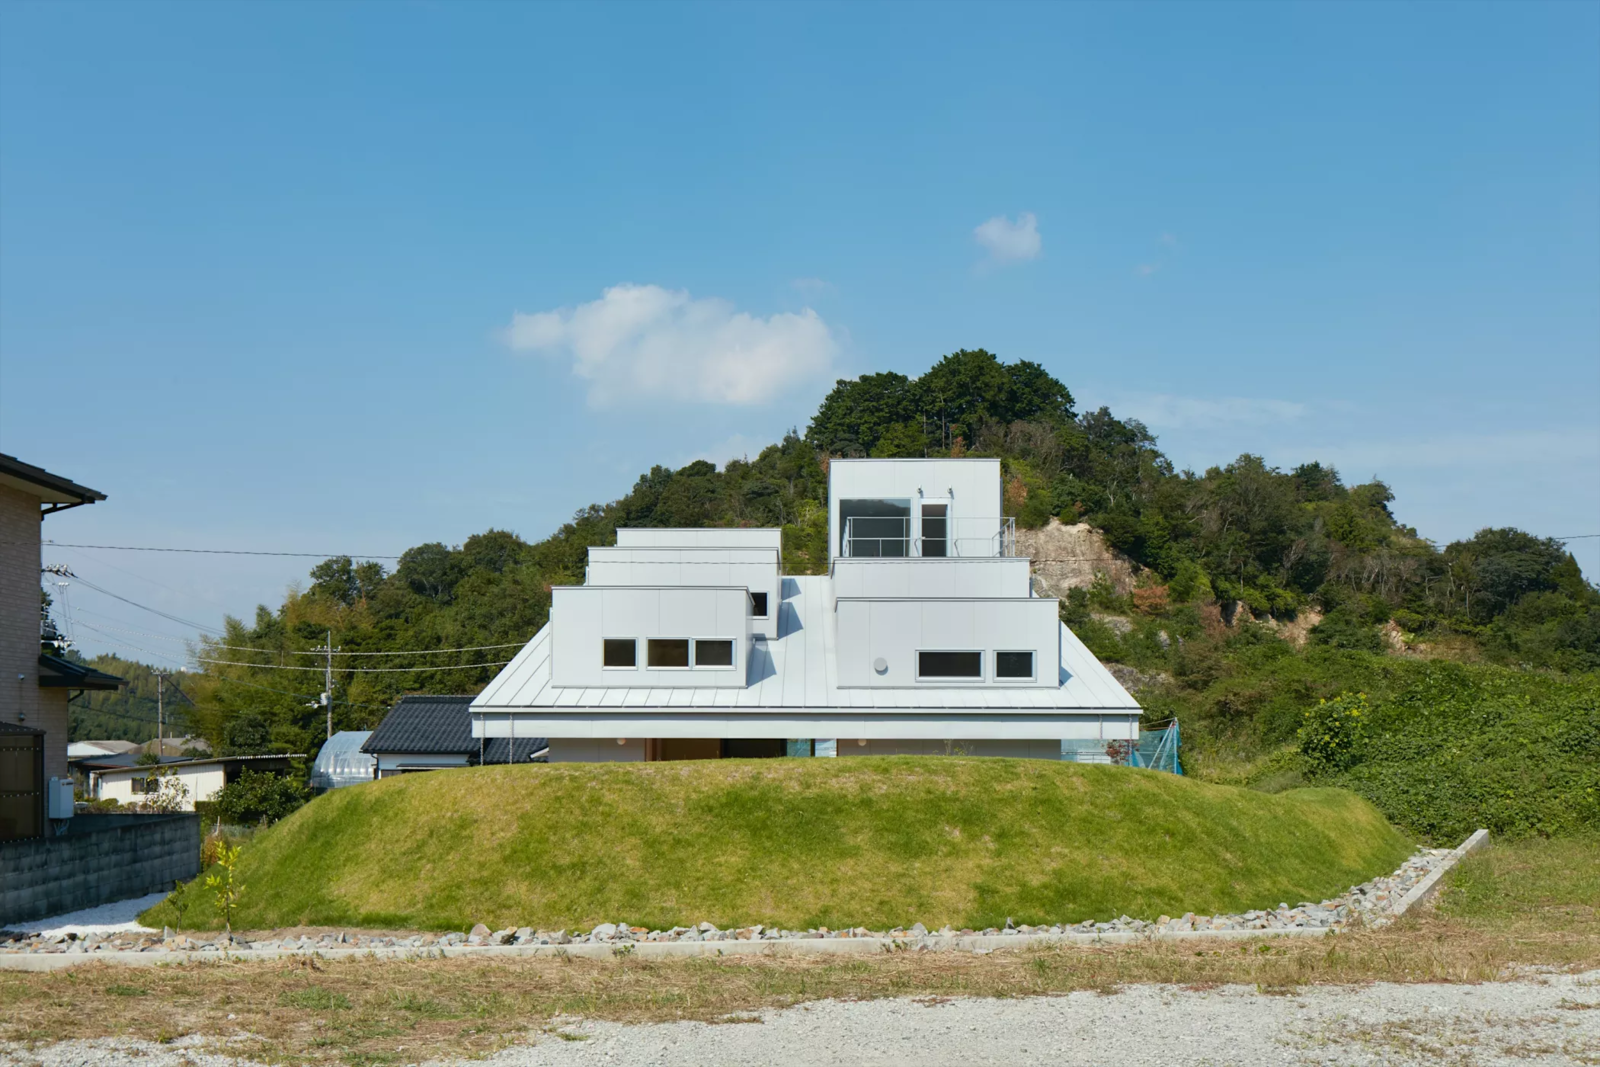 Photo 1 of 6 in House in Tokushima by Fujiwara-Muro Architects